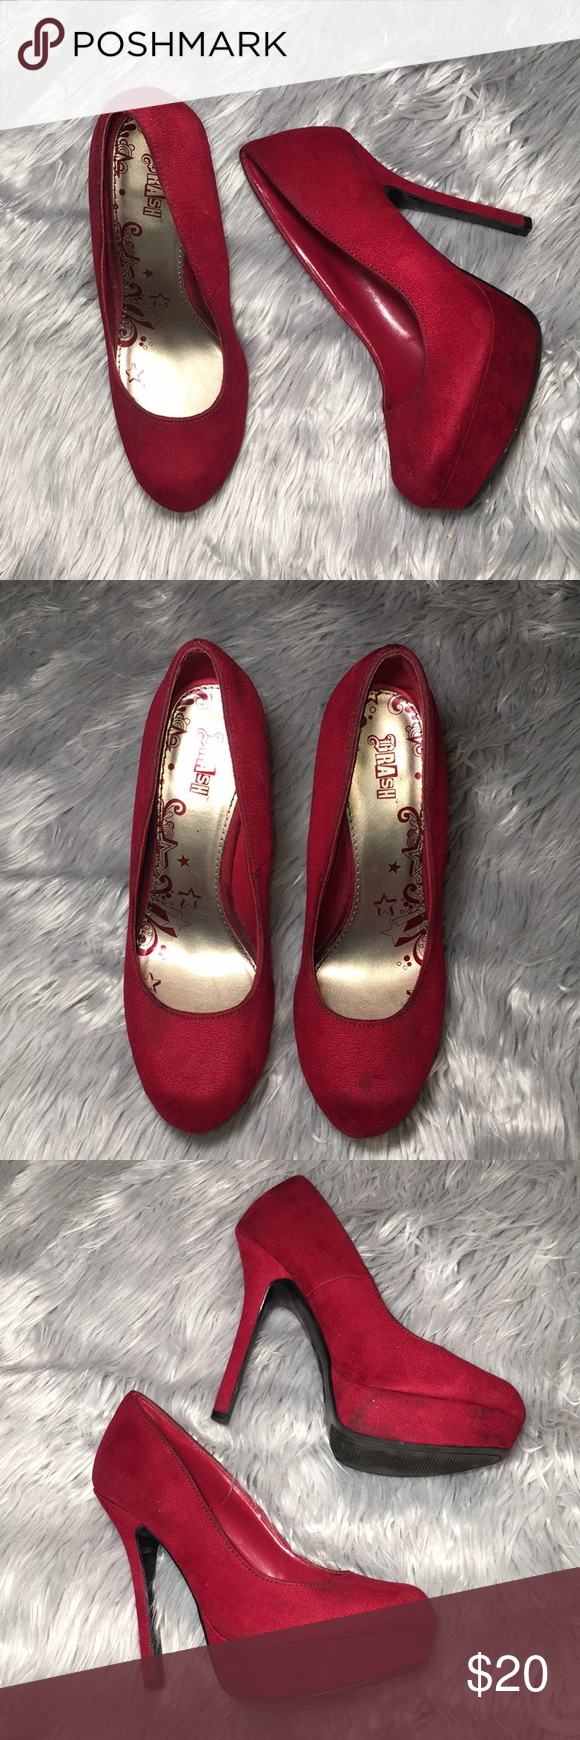 2898399b642 Brash Shoes | Brash Red Pumps Sz 8 | Color: Red | Size: 8 in 2019 ...